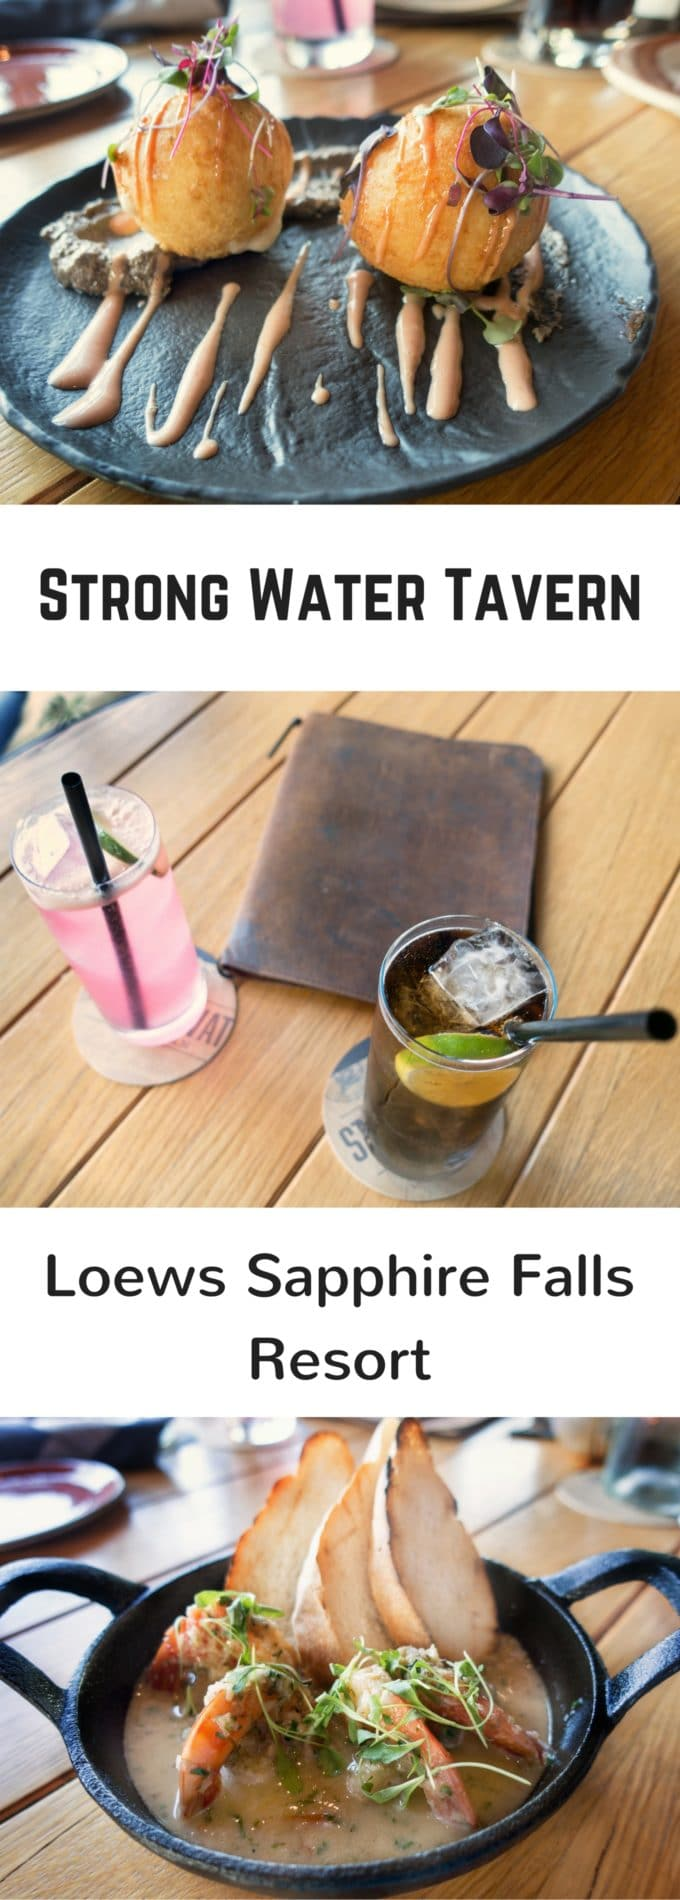 Enjoy the deliciousness of the Caribbean at Loews Sapphire Falls Resort at Universal Orlando.  Visit the Strong Water Tavern for a night of delicious Tapas and Rum Drinks.